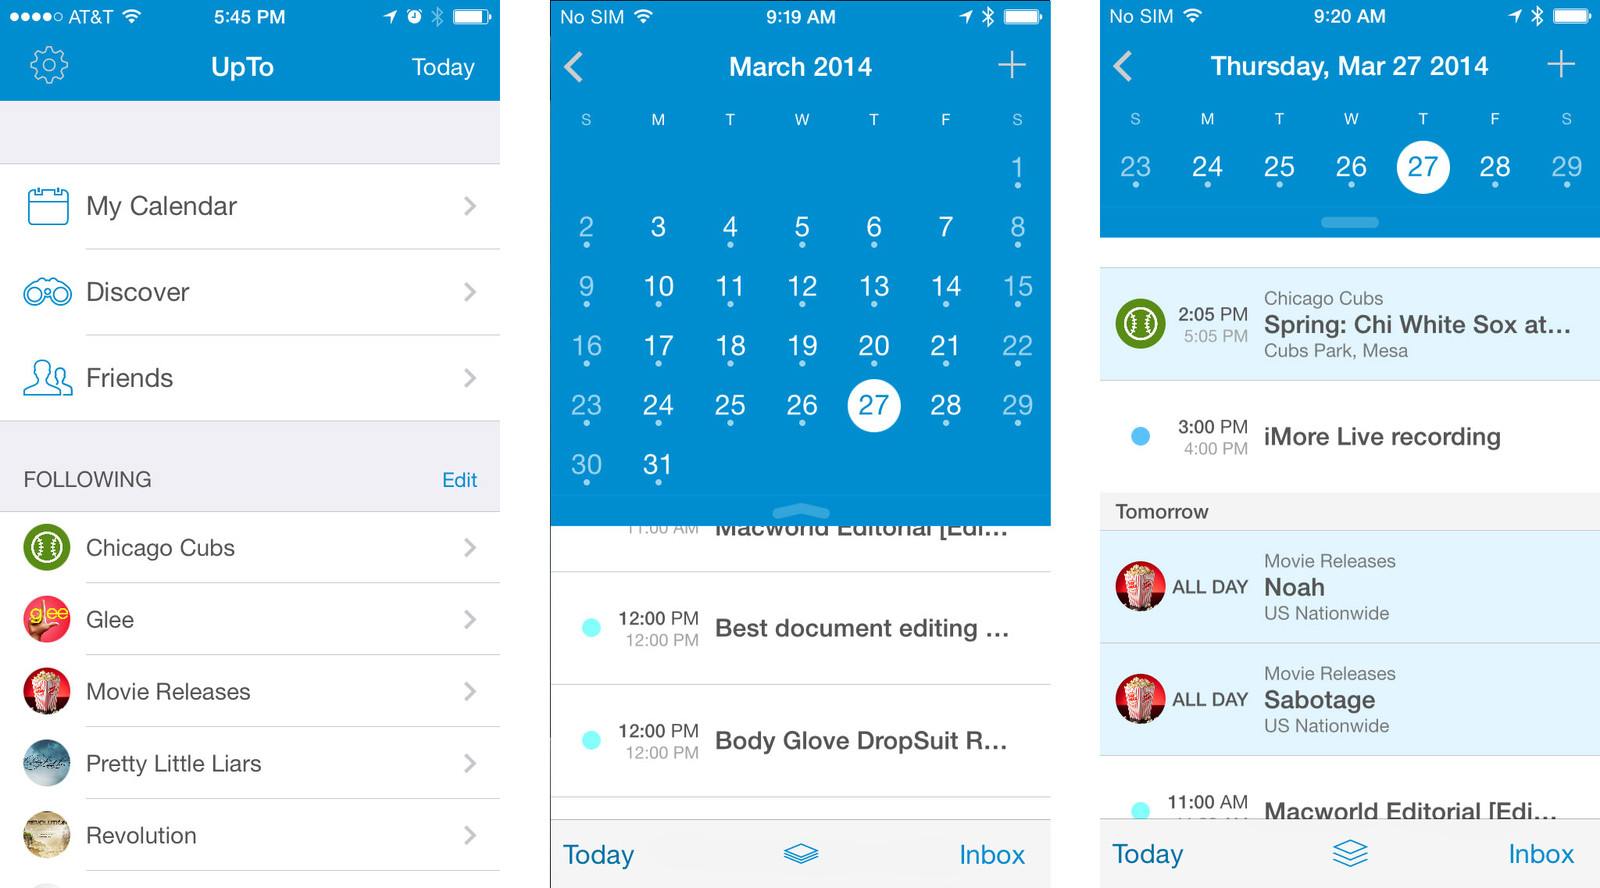 Best calendar apps for iPhone: UpTo Calendar